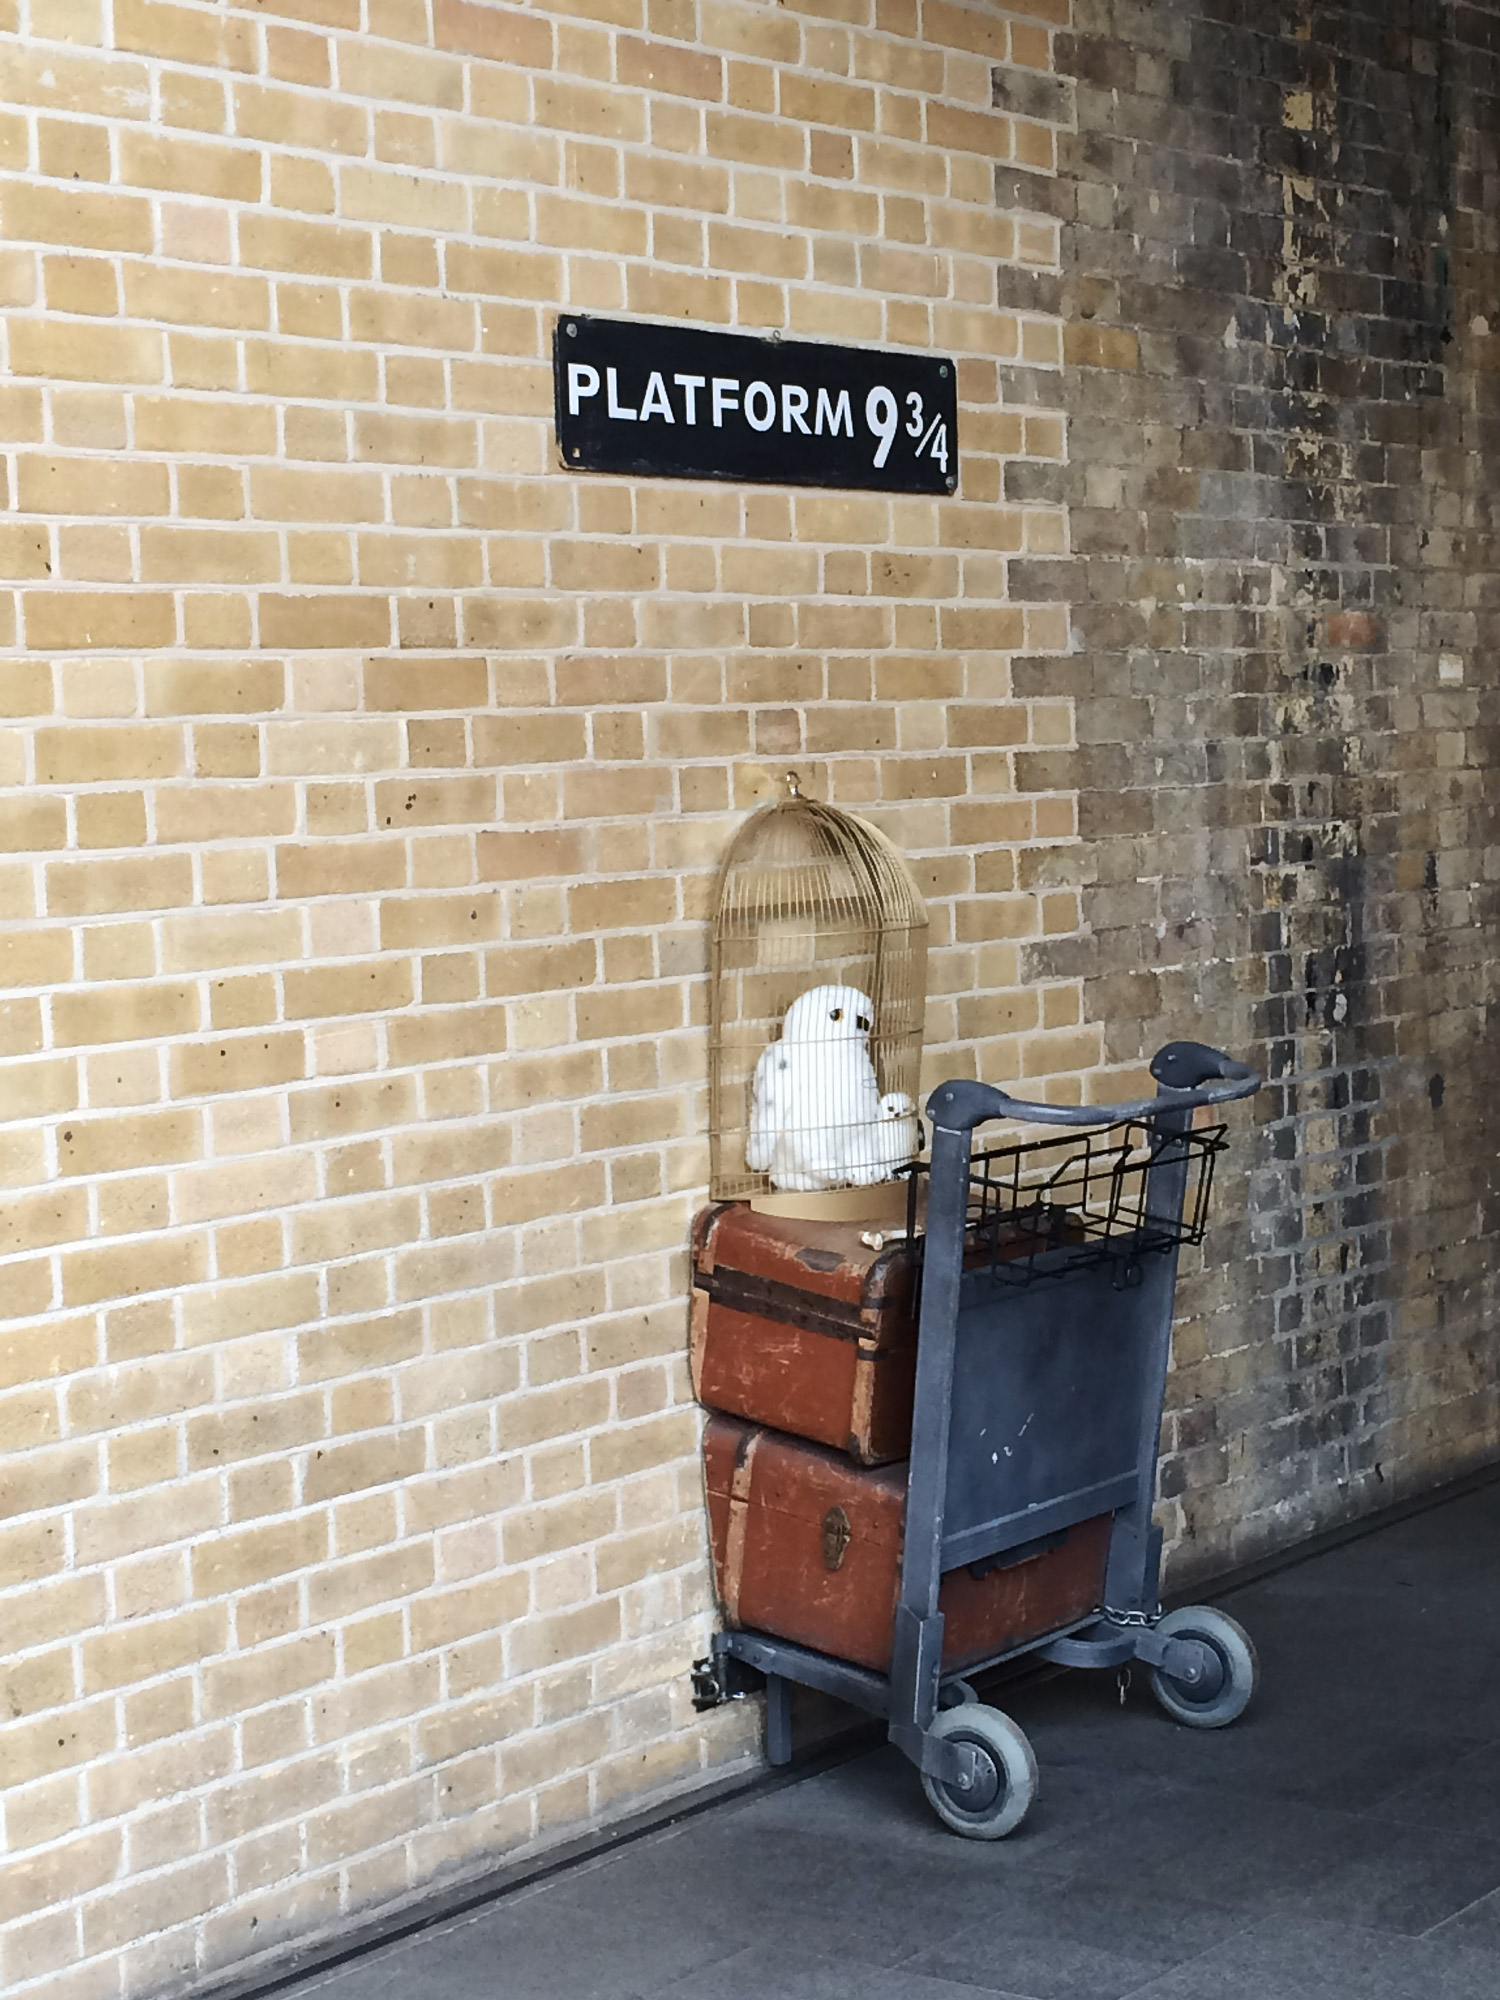 plateforme-9-3-4-harry-potter-londres